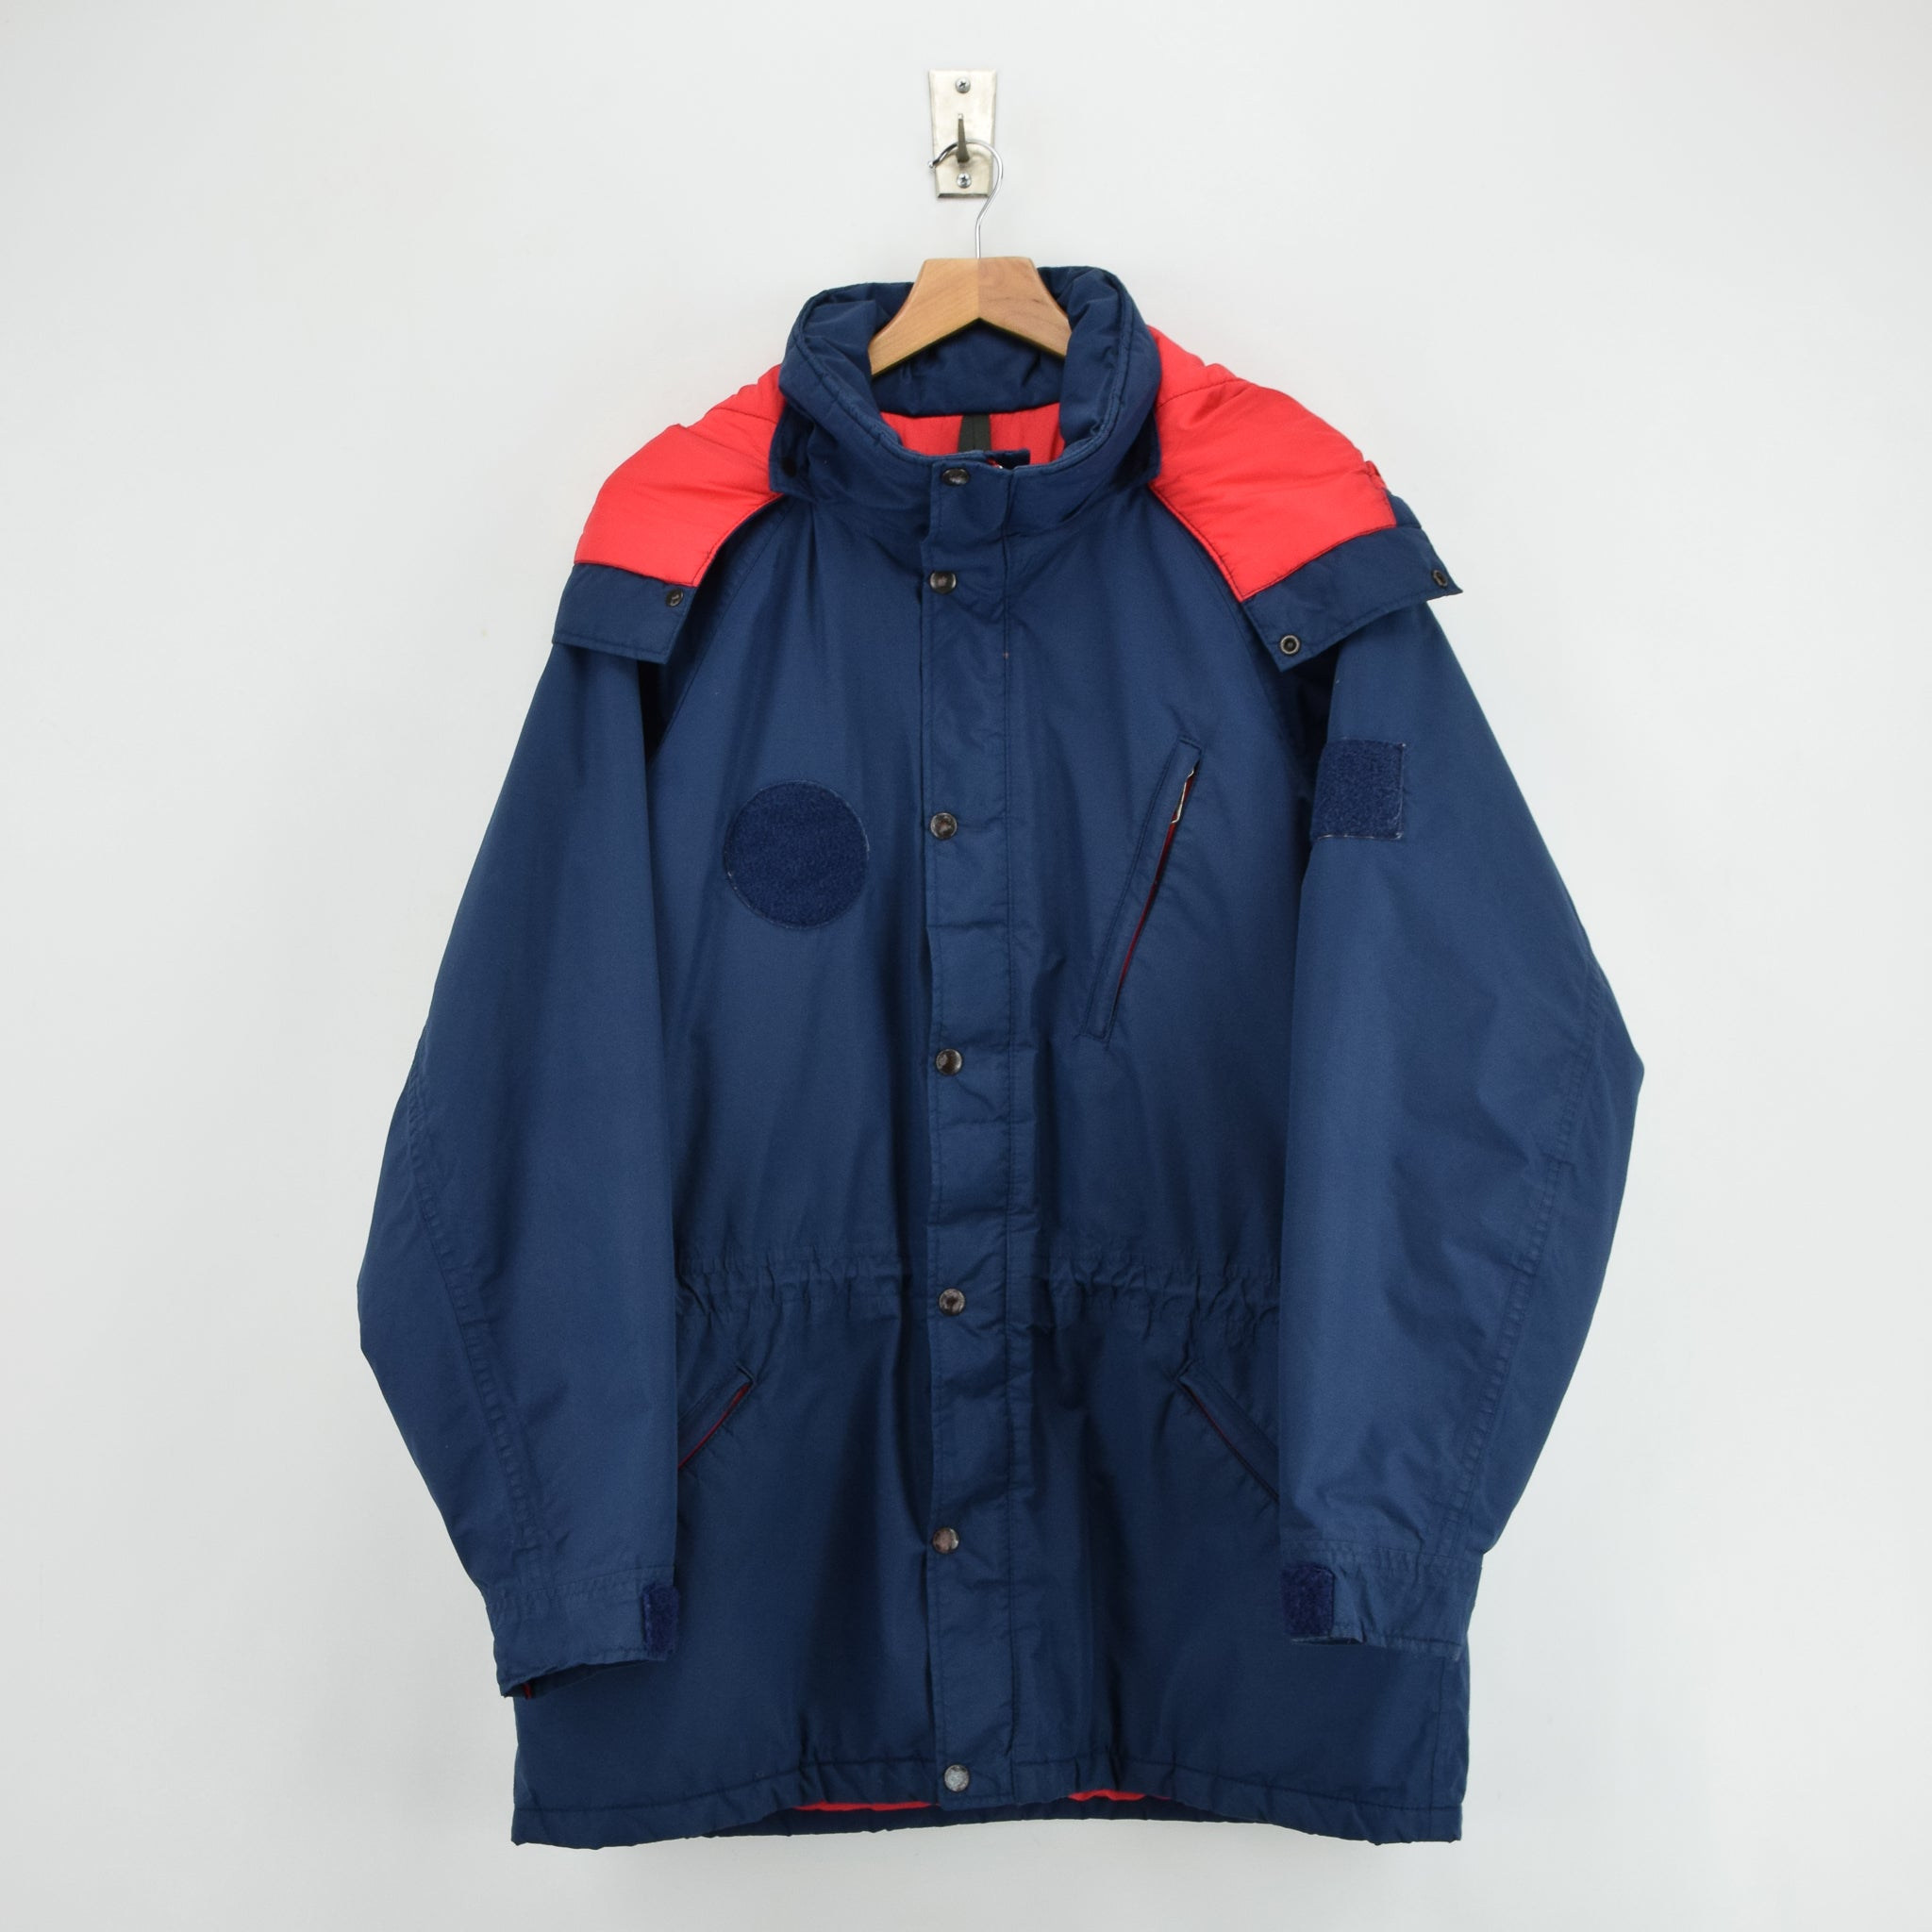 3f3cc4660 Vintage The North Face Gore-Tex Blue Mountain Parka Jacket Made in USA L